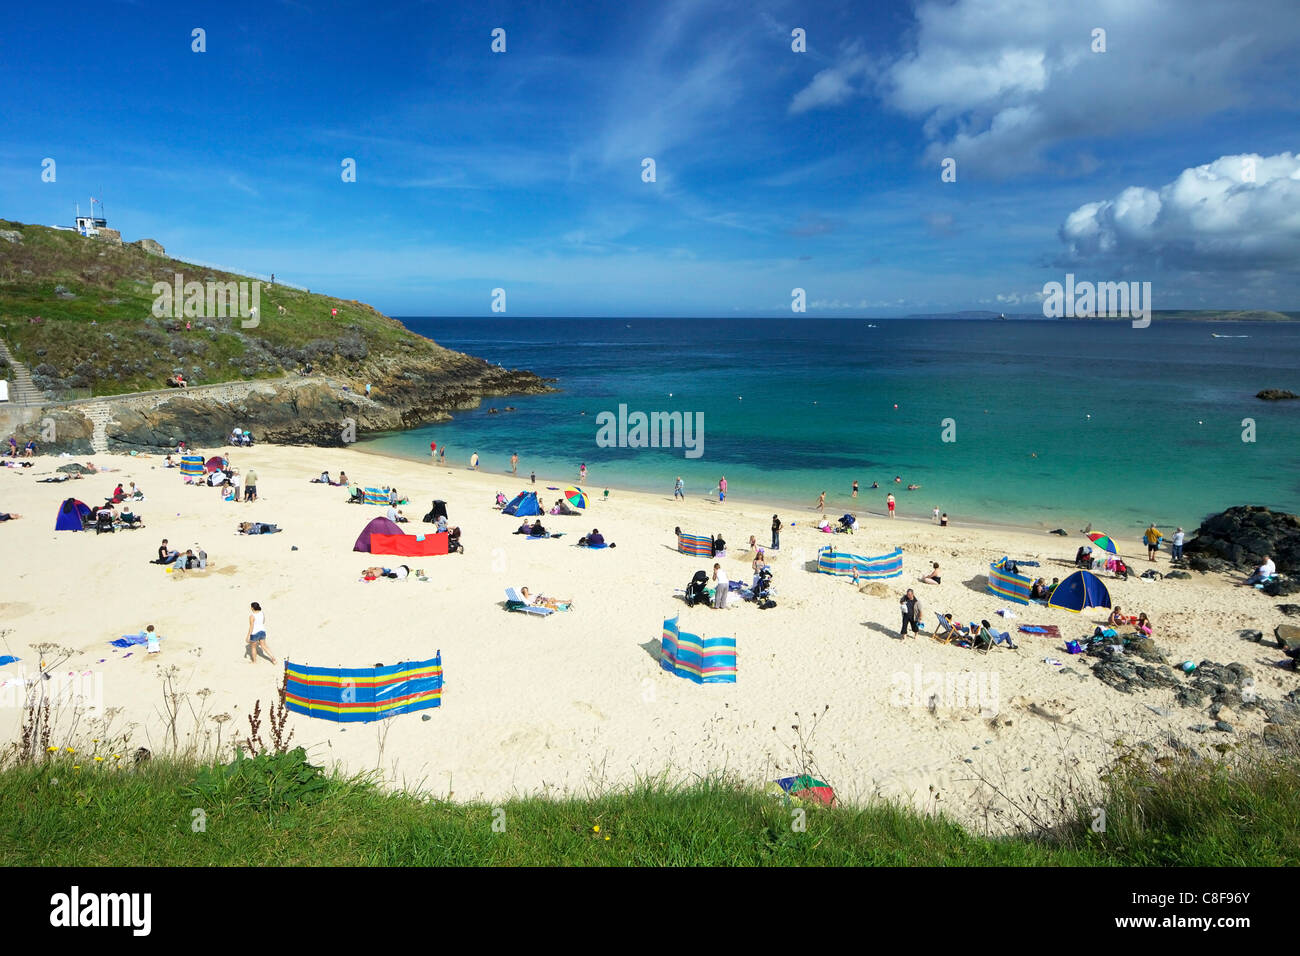 Families enjoy the sea, sand and summer sunshine, Porthgwidden beach, St. Ives, Cornwall, England, United Kingdom - Stock Image